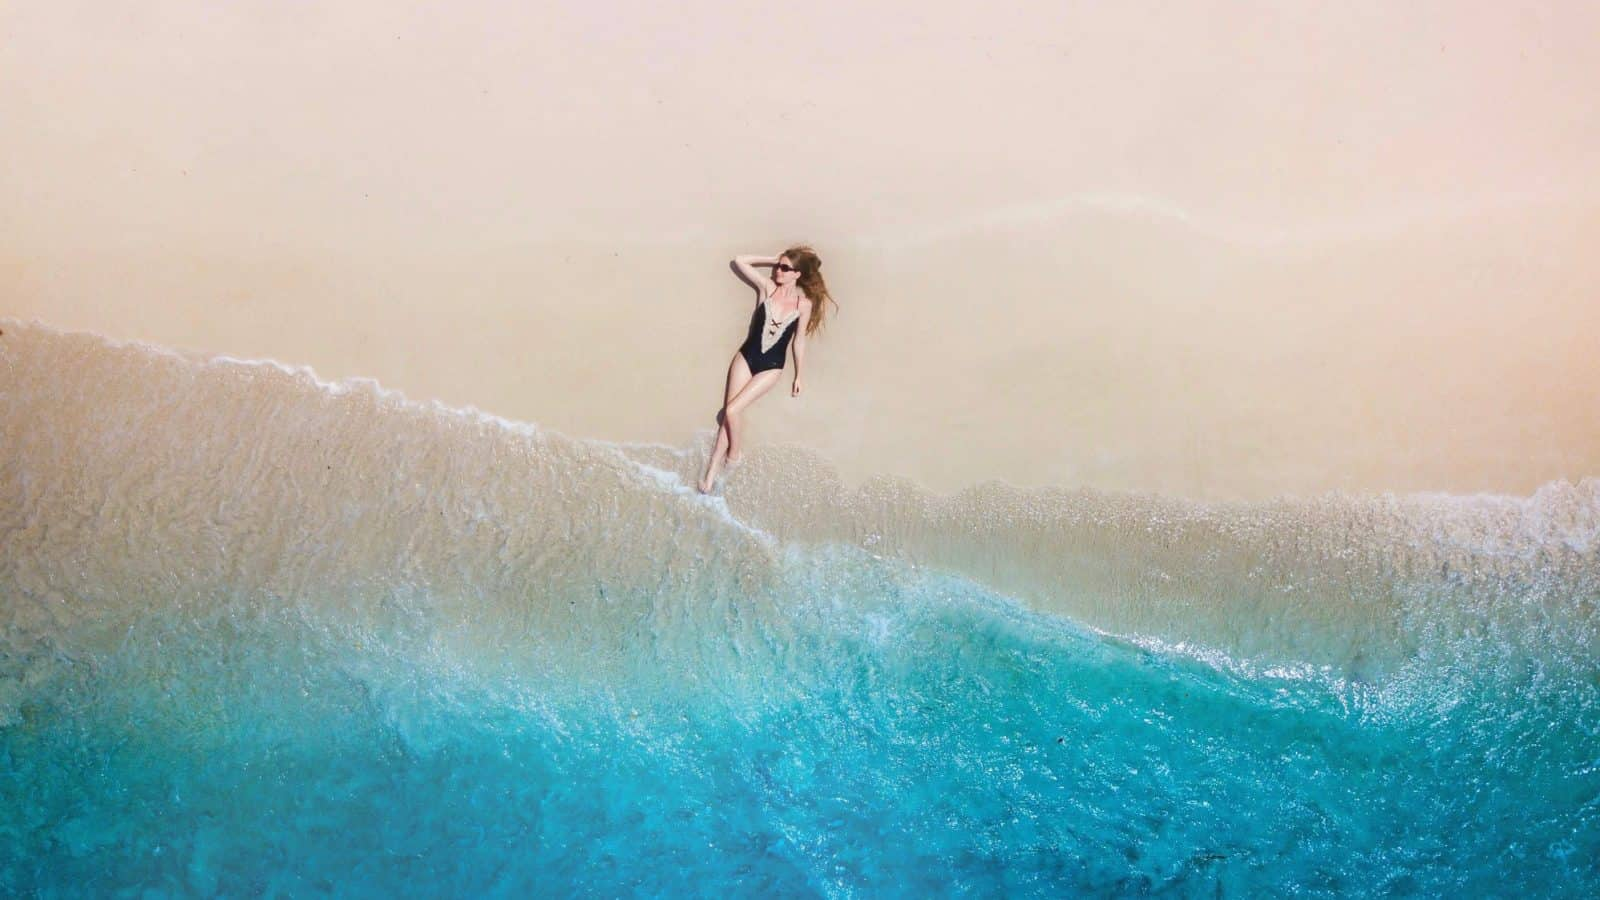 An aerial shot of a girl on a beach in an article about quotes about the beach